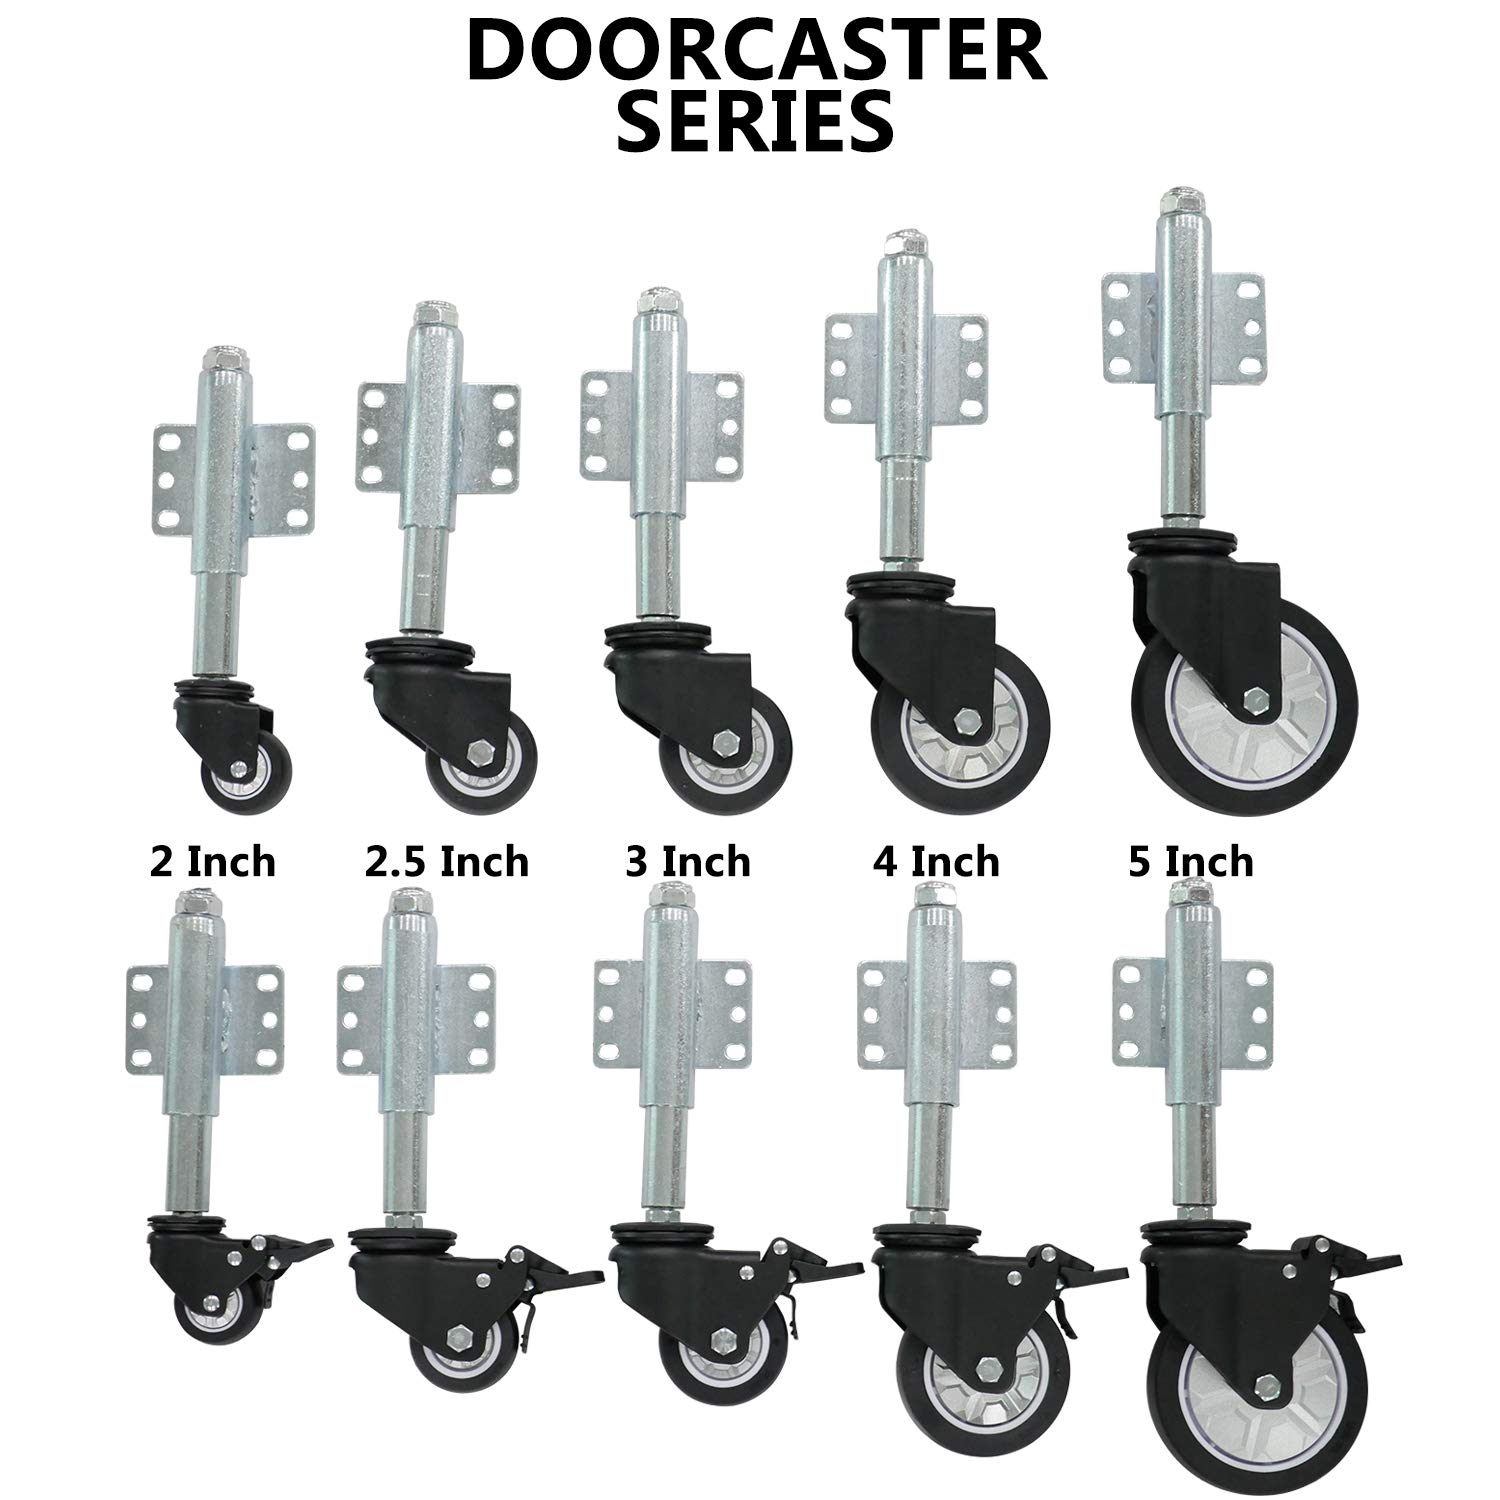 Casoter 3-Inch Spring Load Door Caster Swivel TPU Thermoplastic Polyurethanes Wheel with 6 Holes Side Mount Plate Ball Bearing Retractable Stem Max 110Lbs//50Kg Load Capacity for Garden Gate